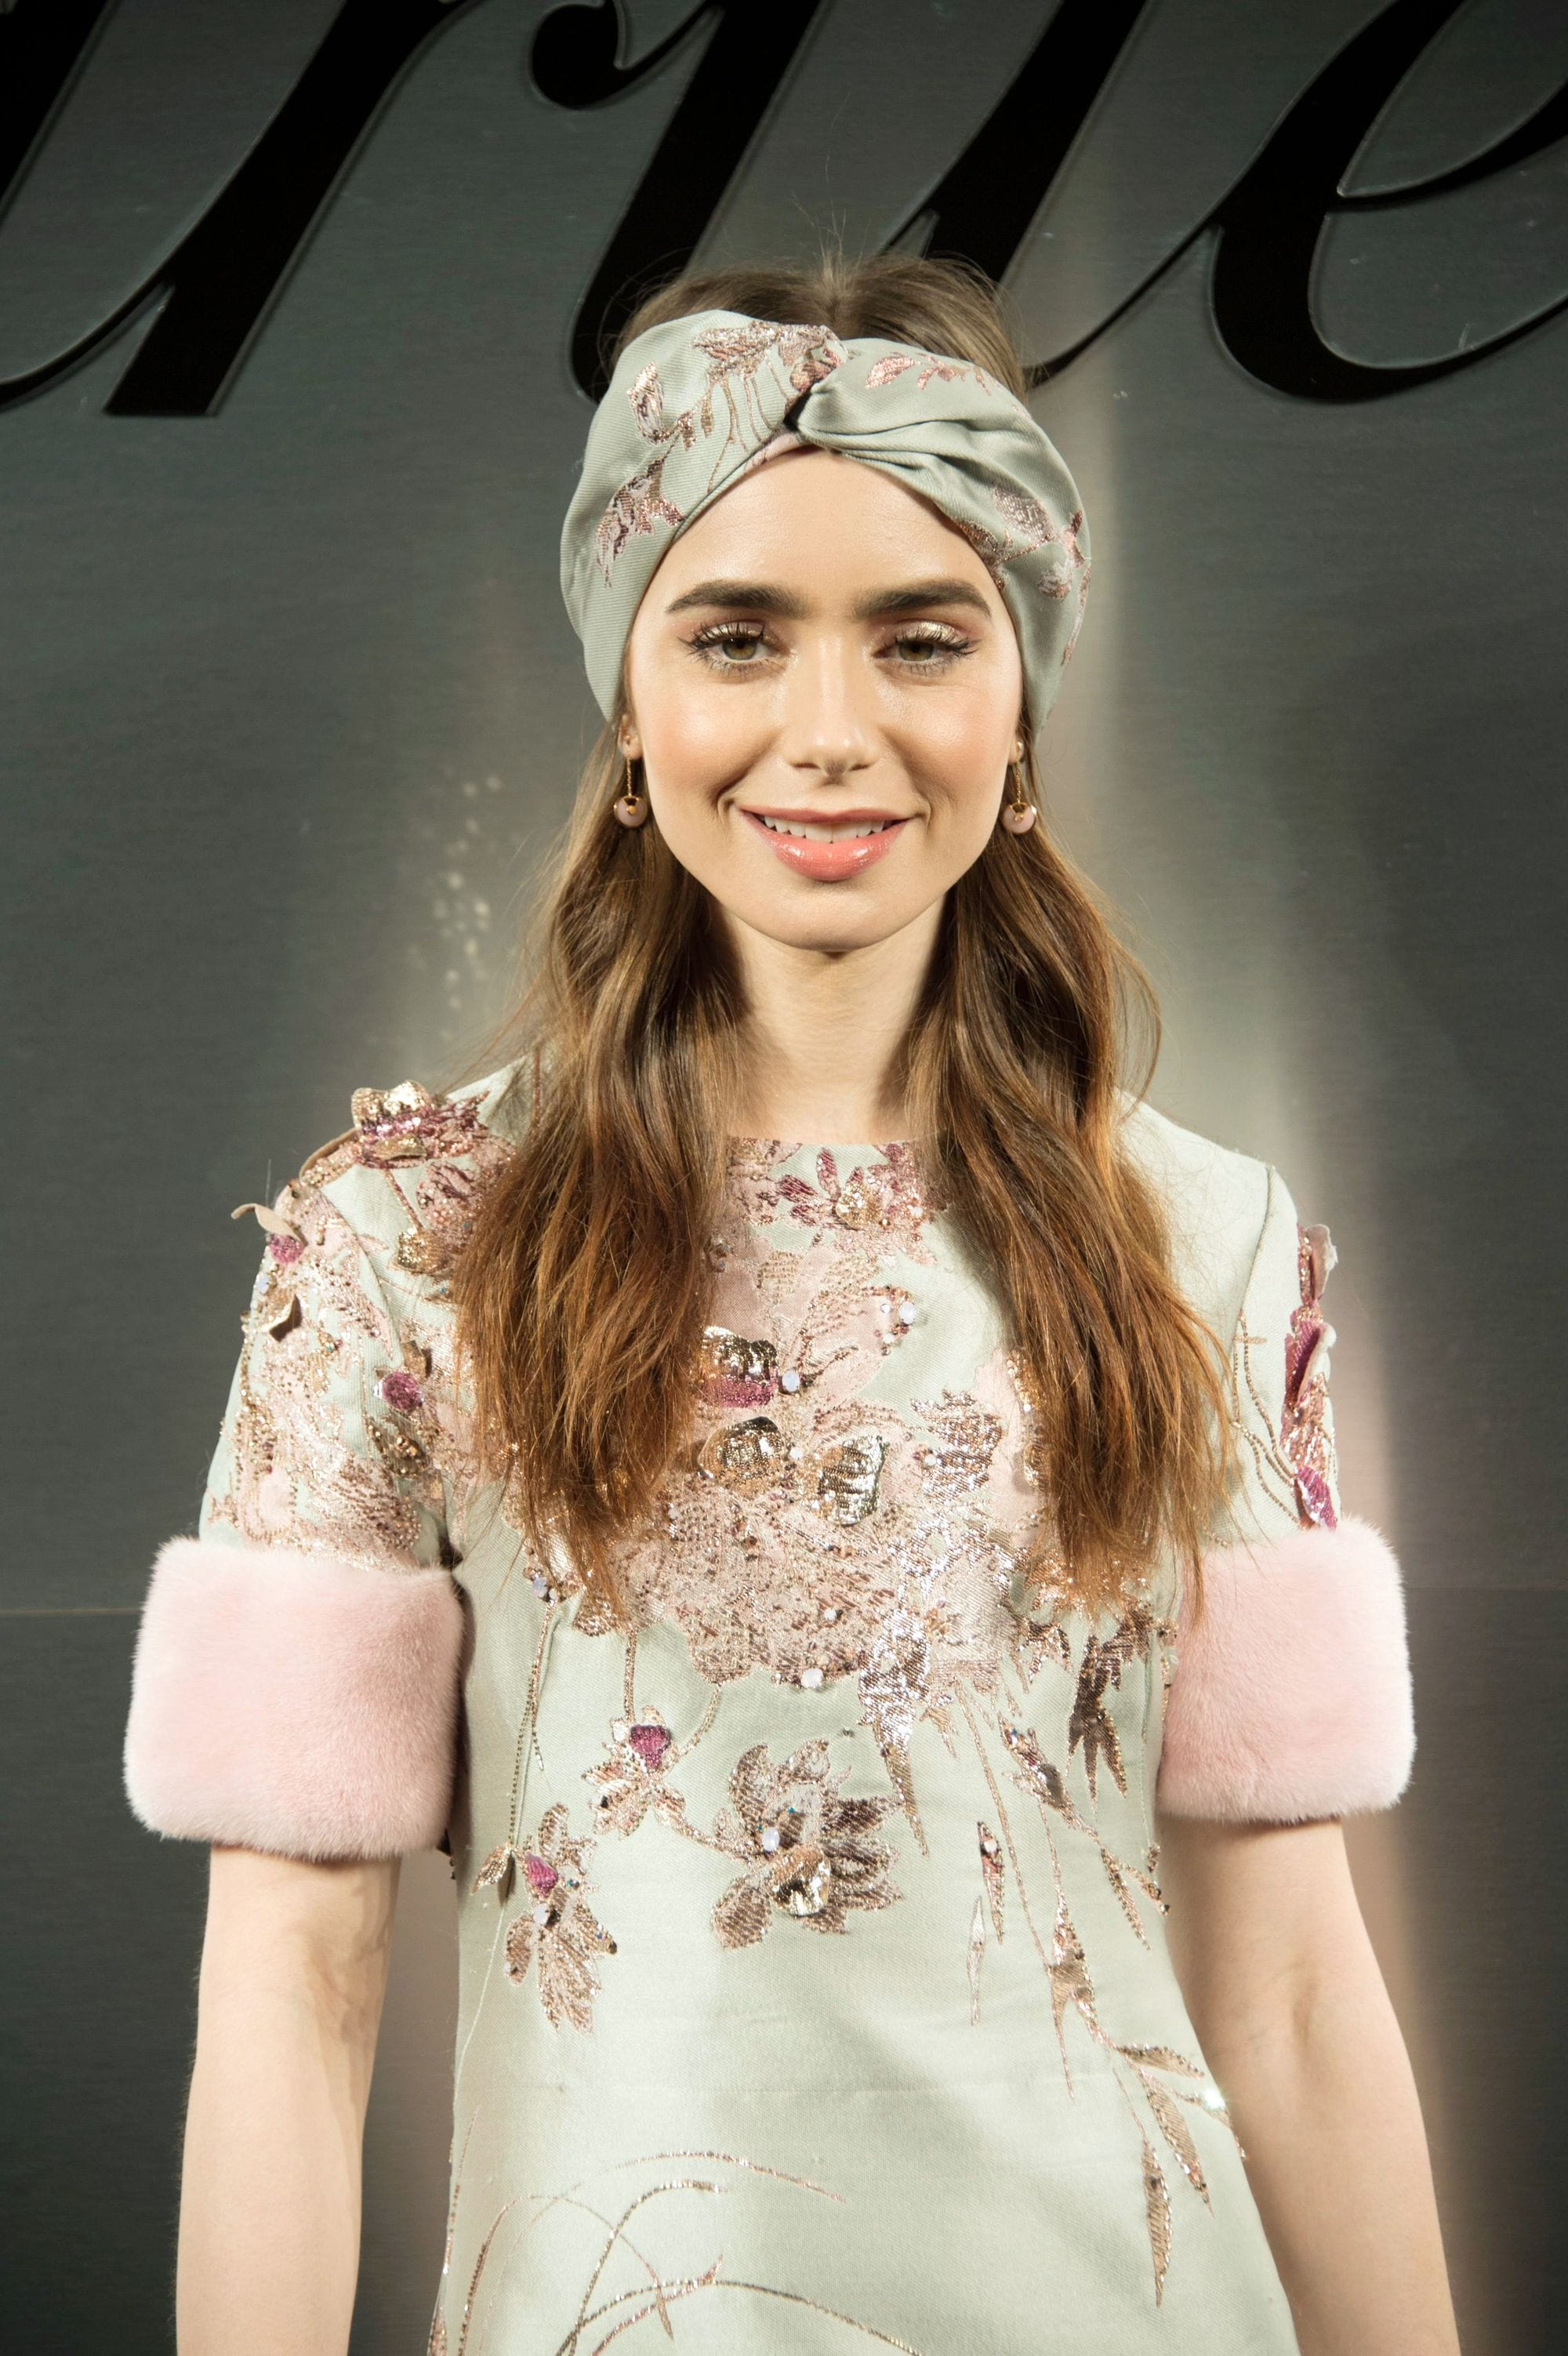 Headband and bandana hairstyles: Lily Collins long wavy light brown hair with turban style headband at red carpet industry event.